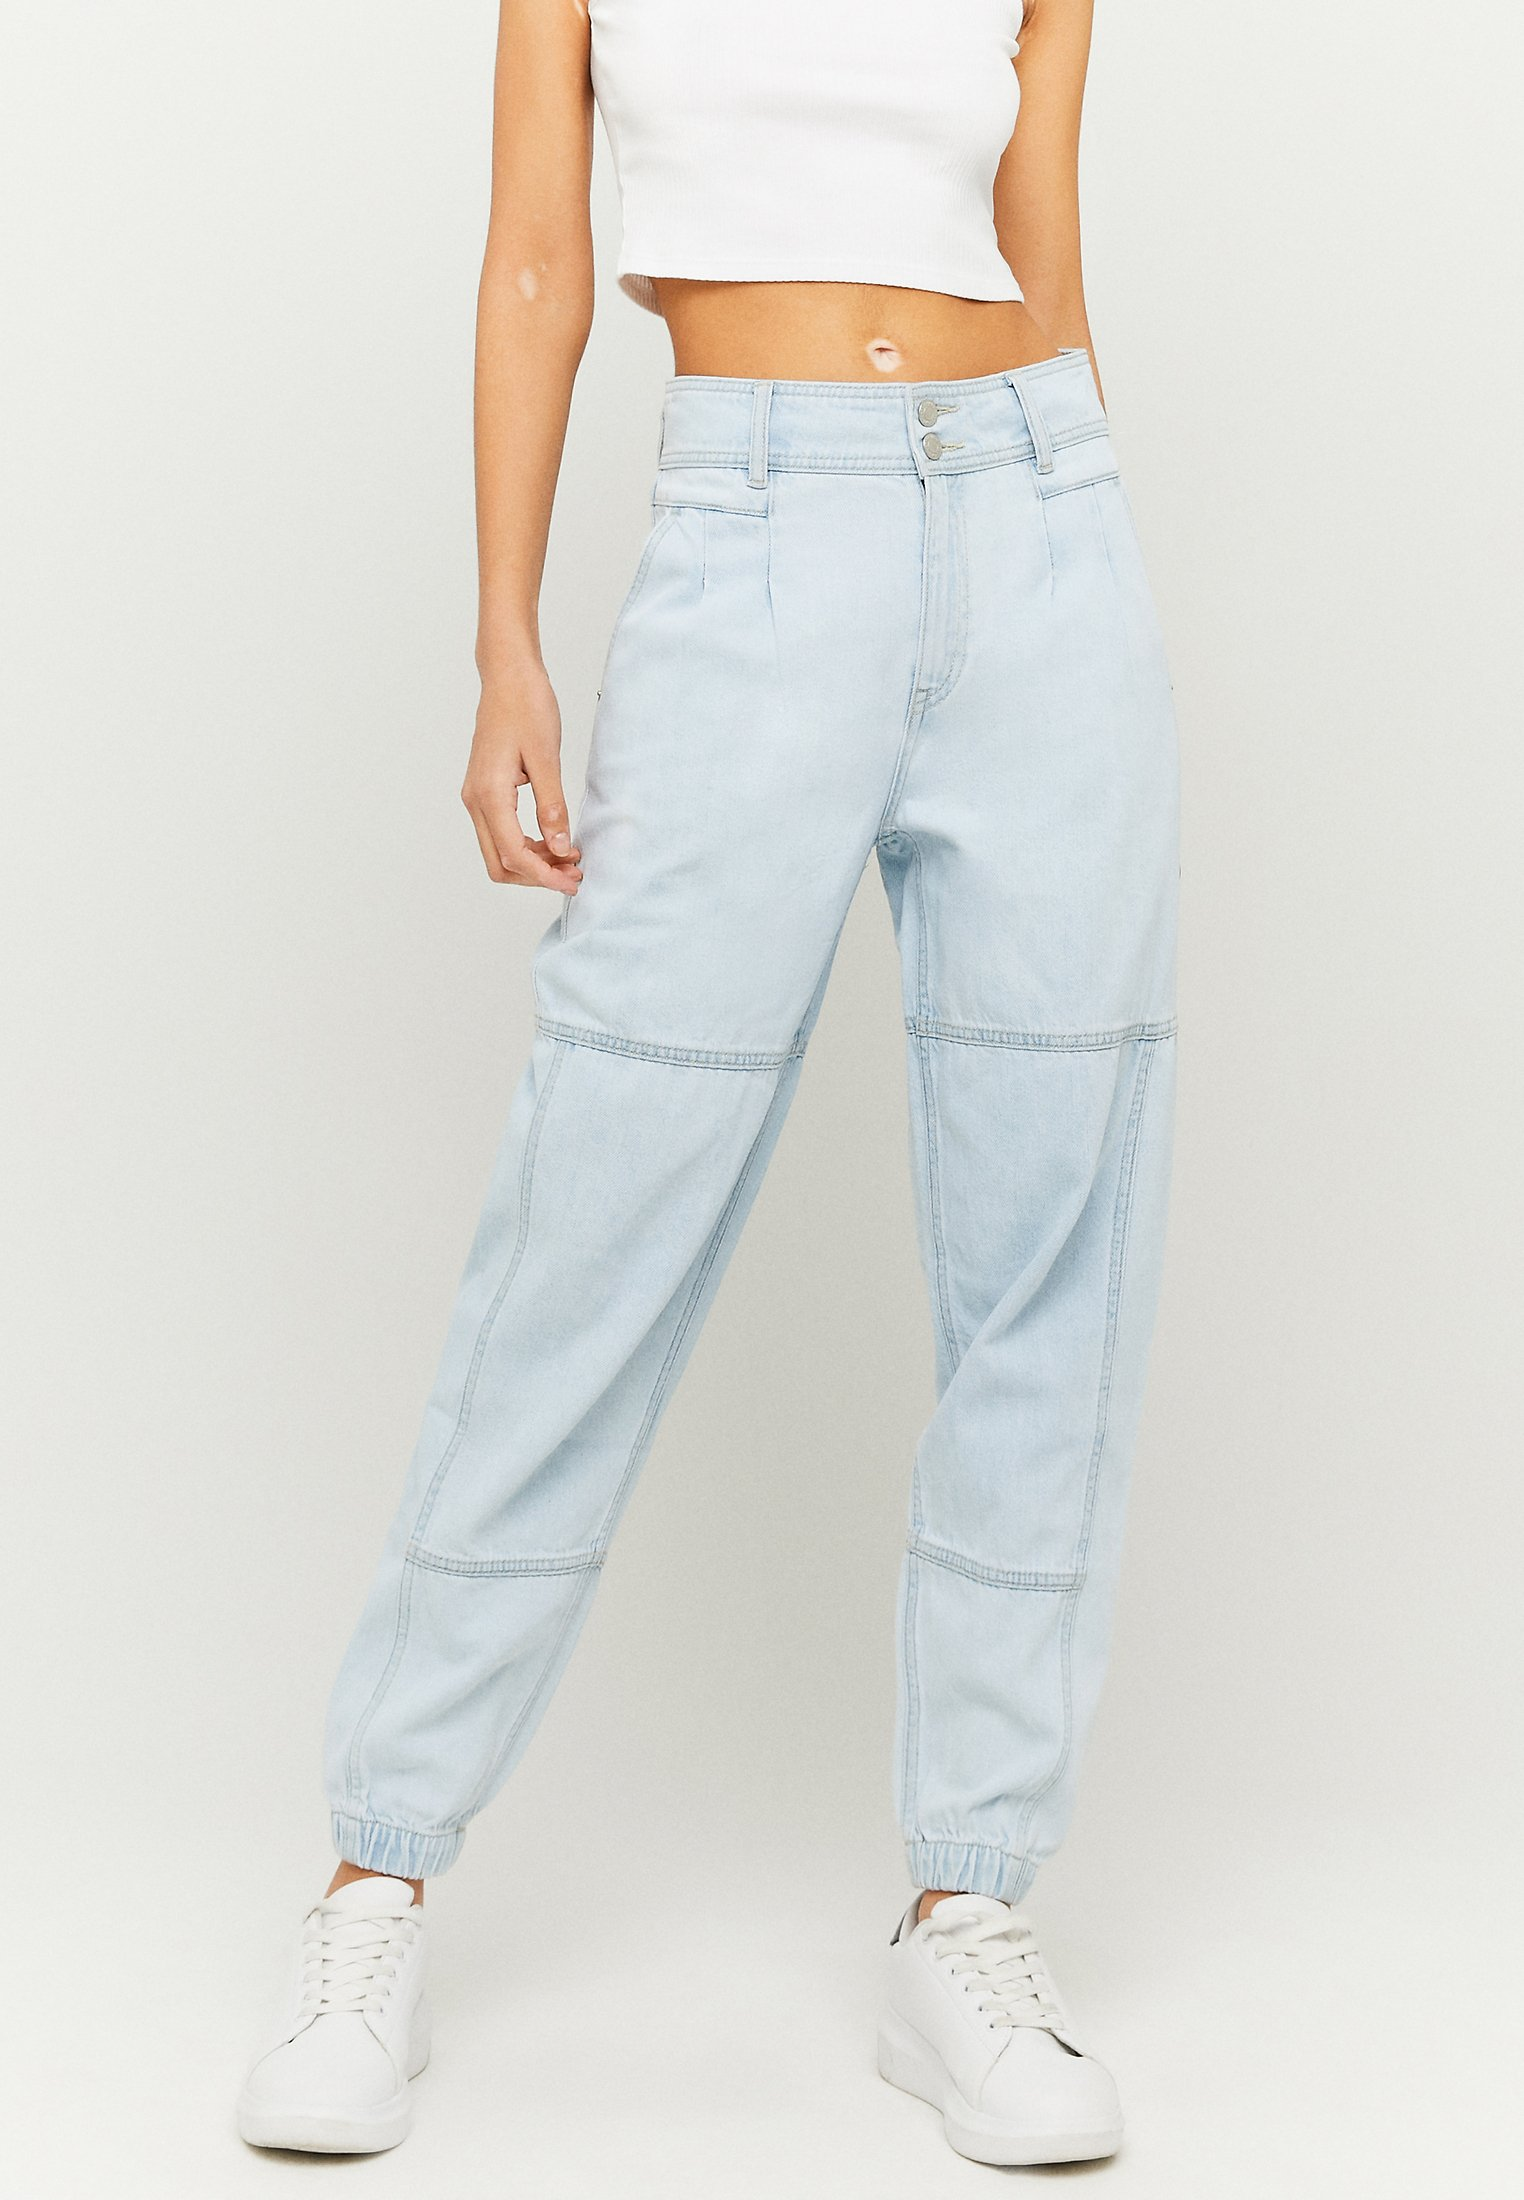 Damer Jeans Tapered Fit